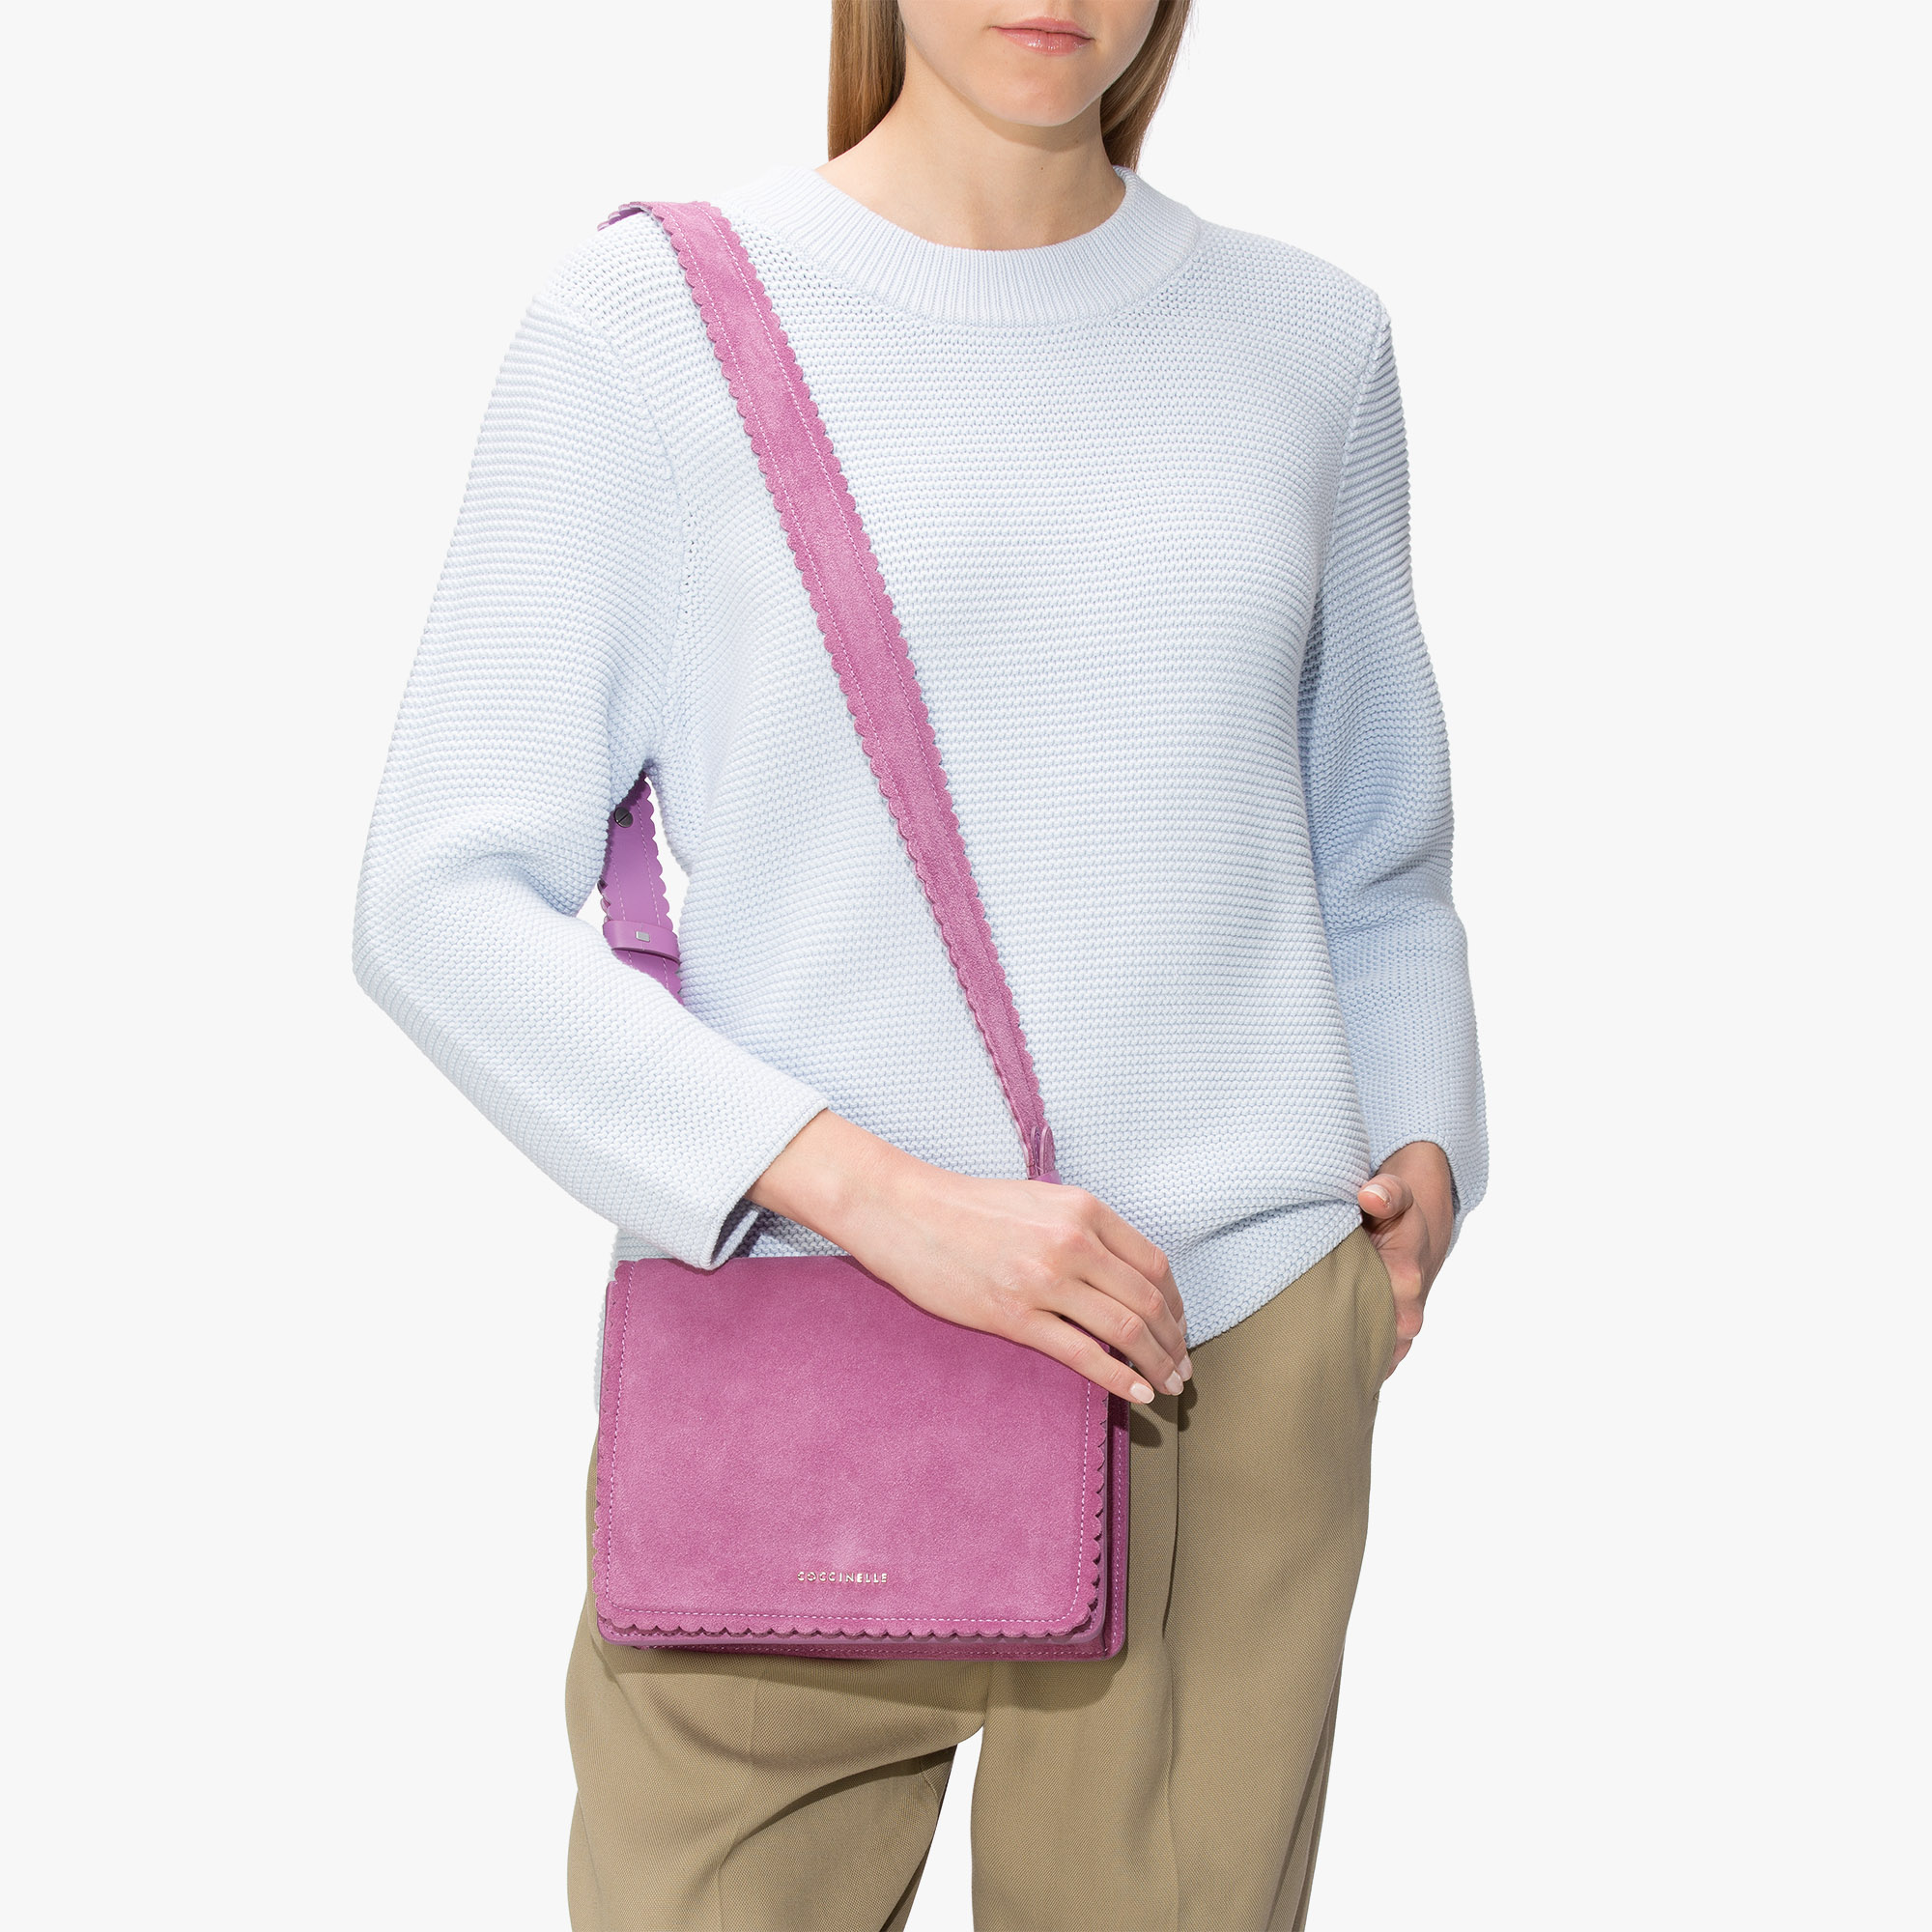 Leopoldine suede cross-body bag